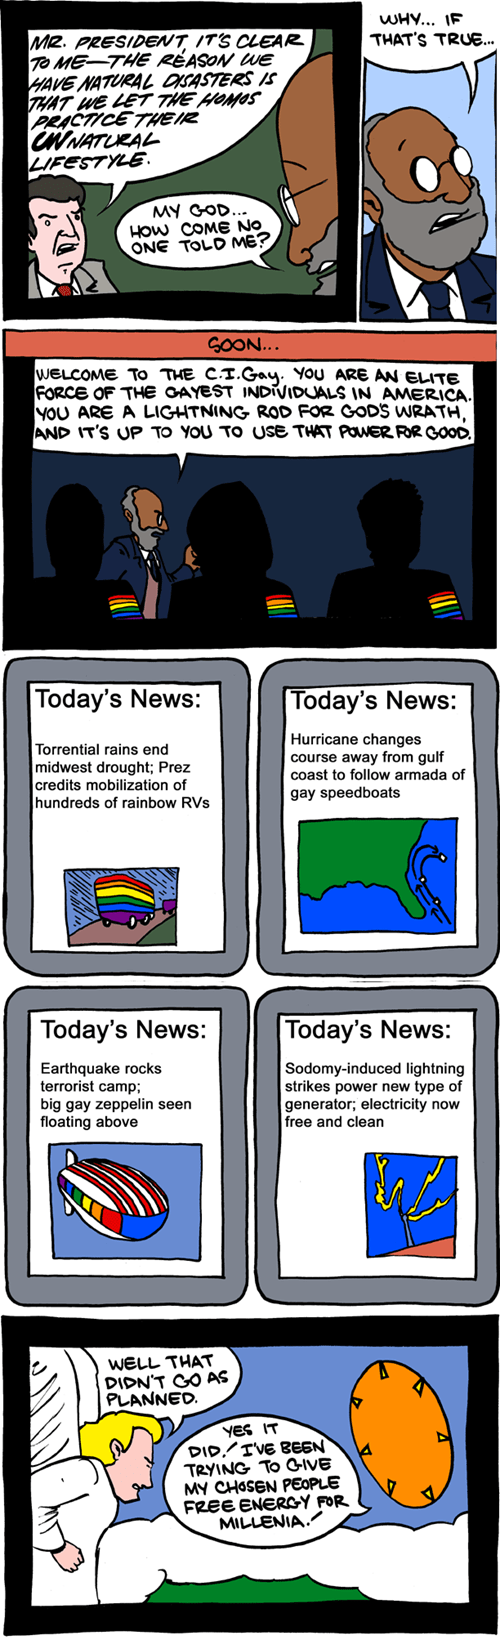 god wtf government mindwarp gay jk web comics - 8267296256